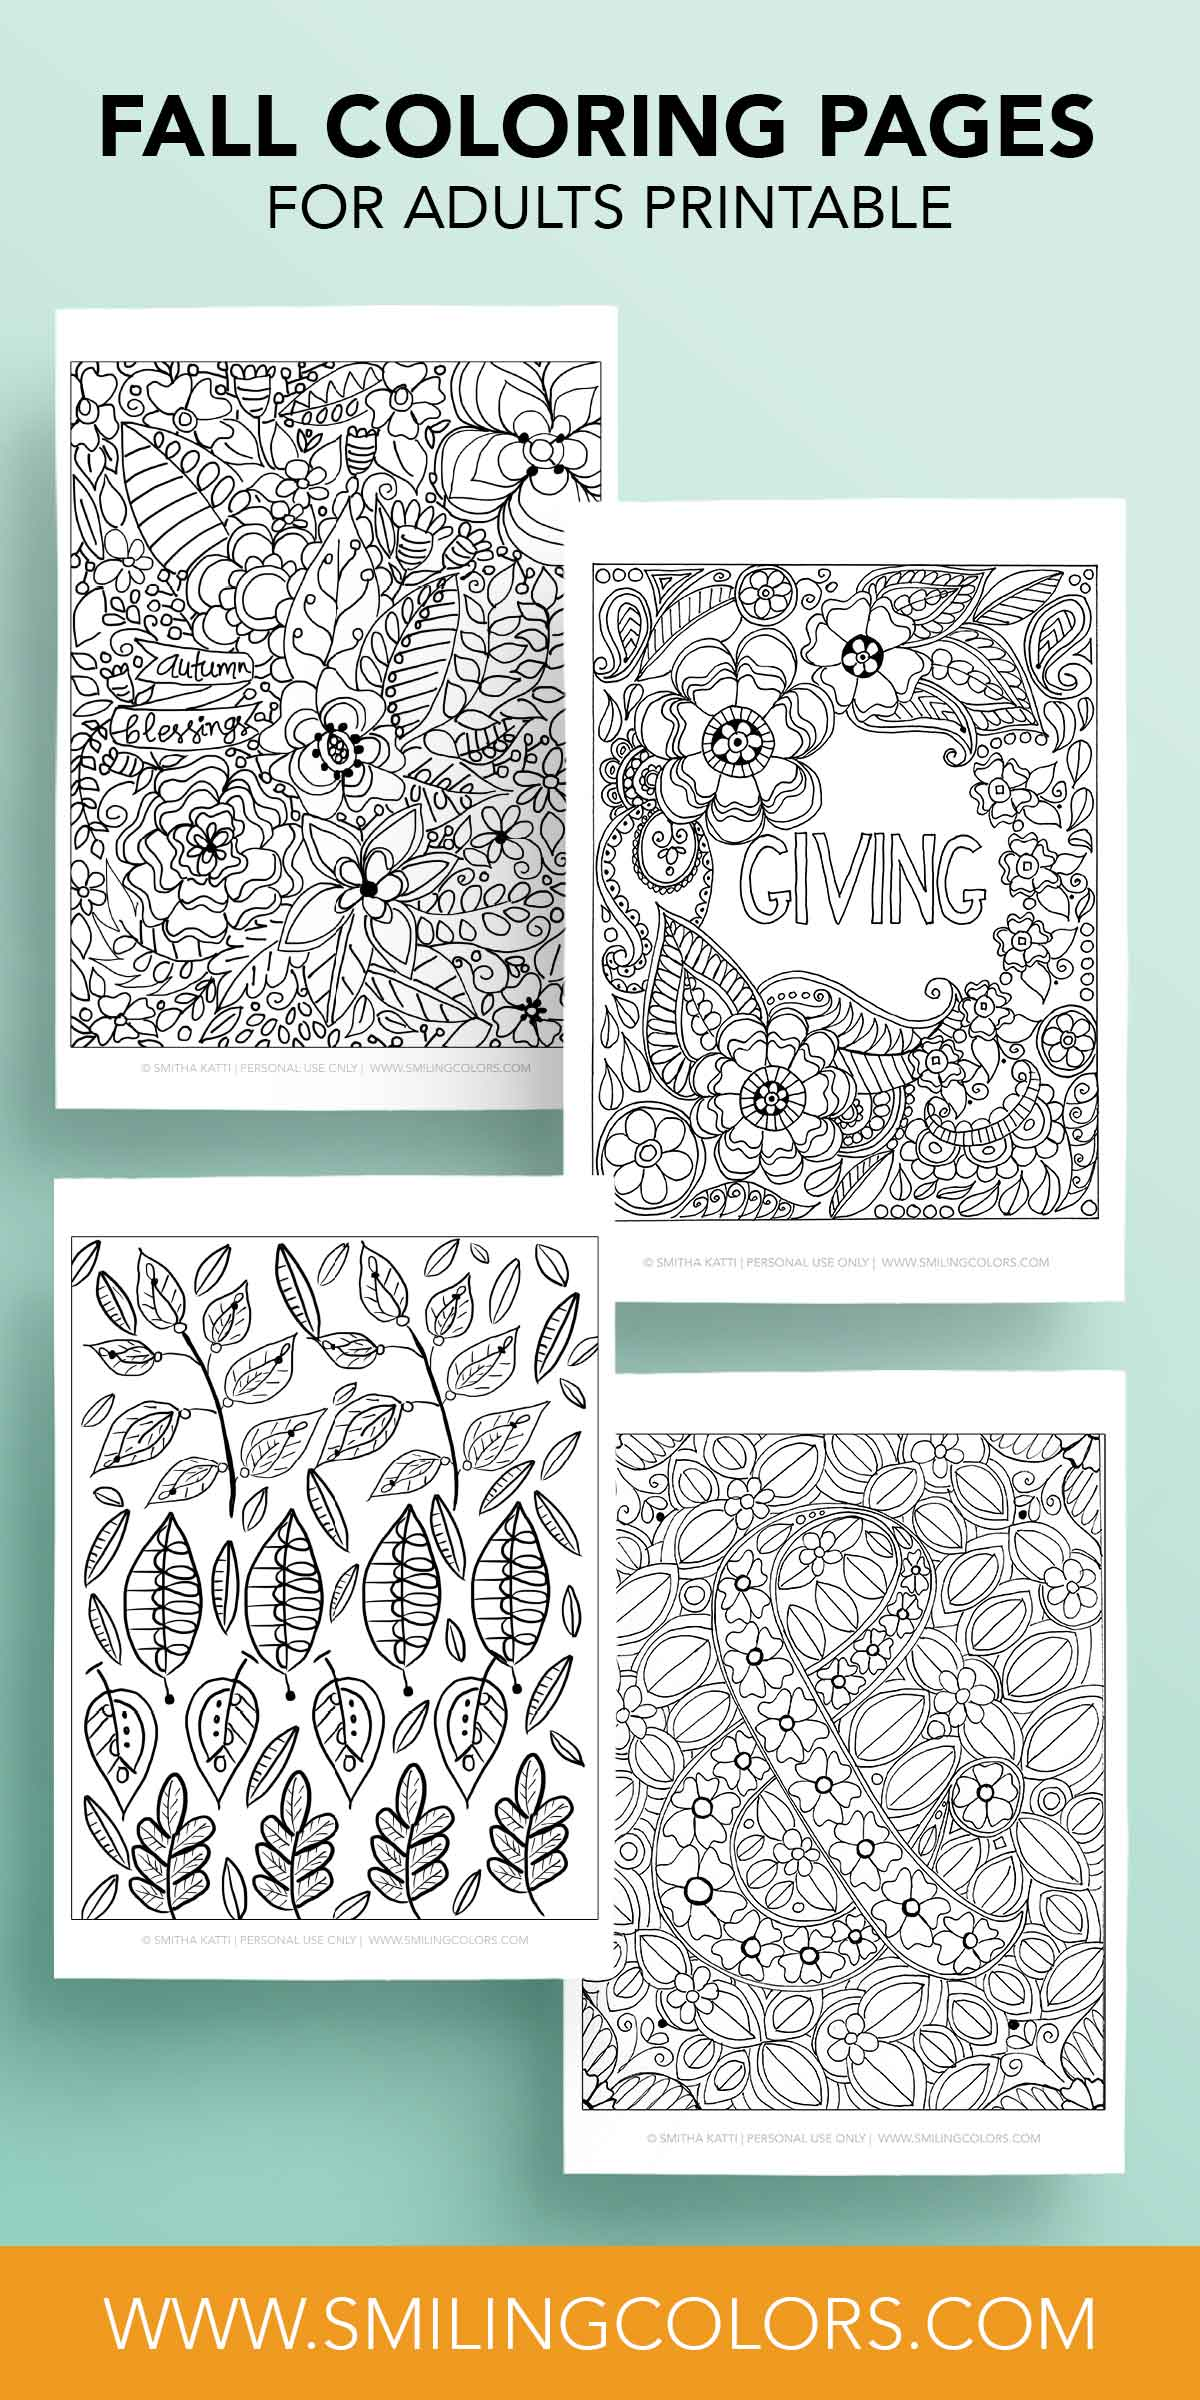 Fall coloring pages for adults printable - Smitha Katti